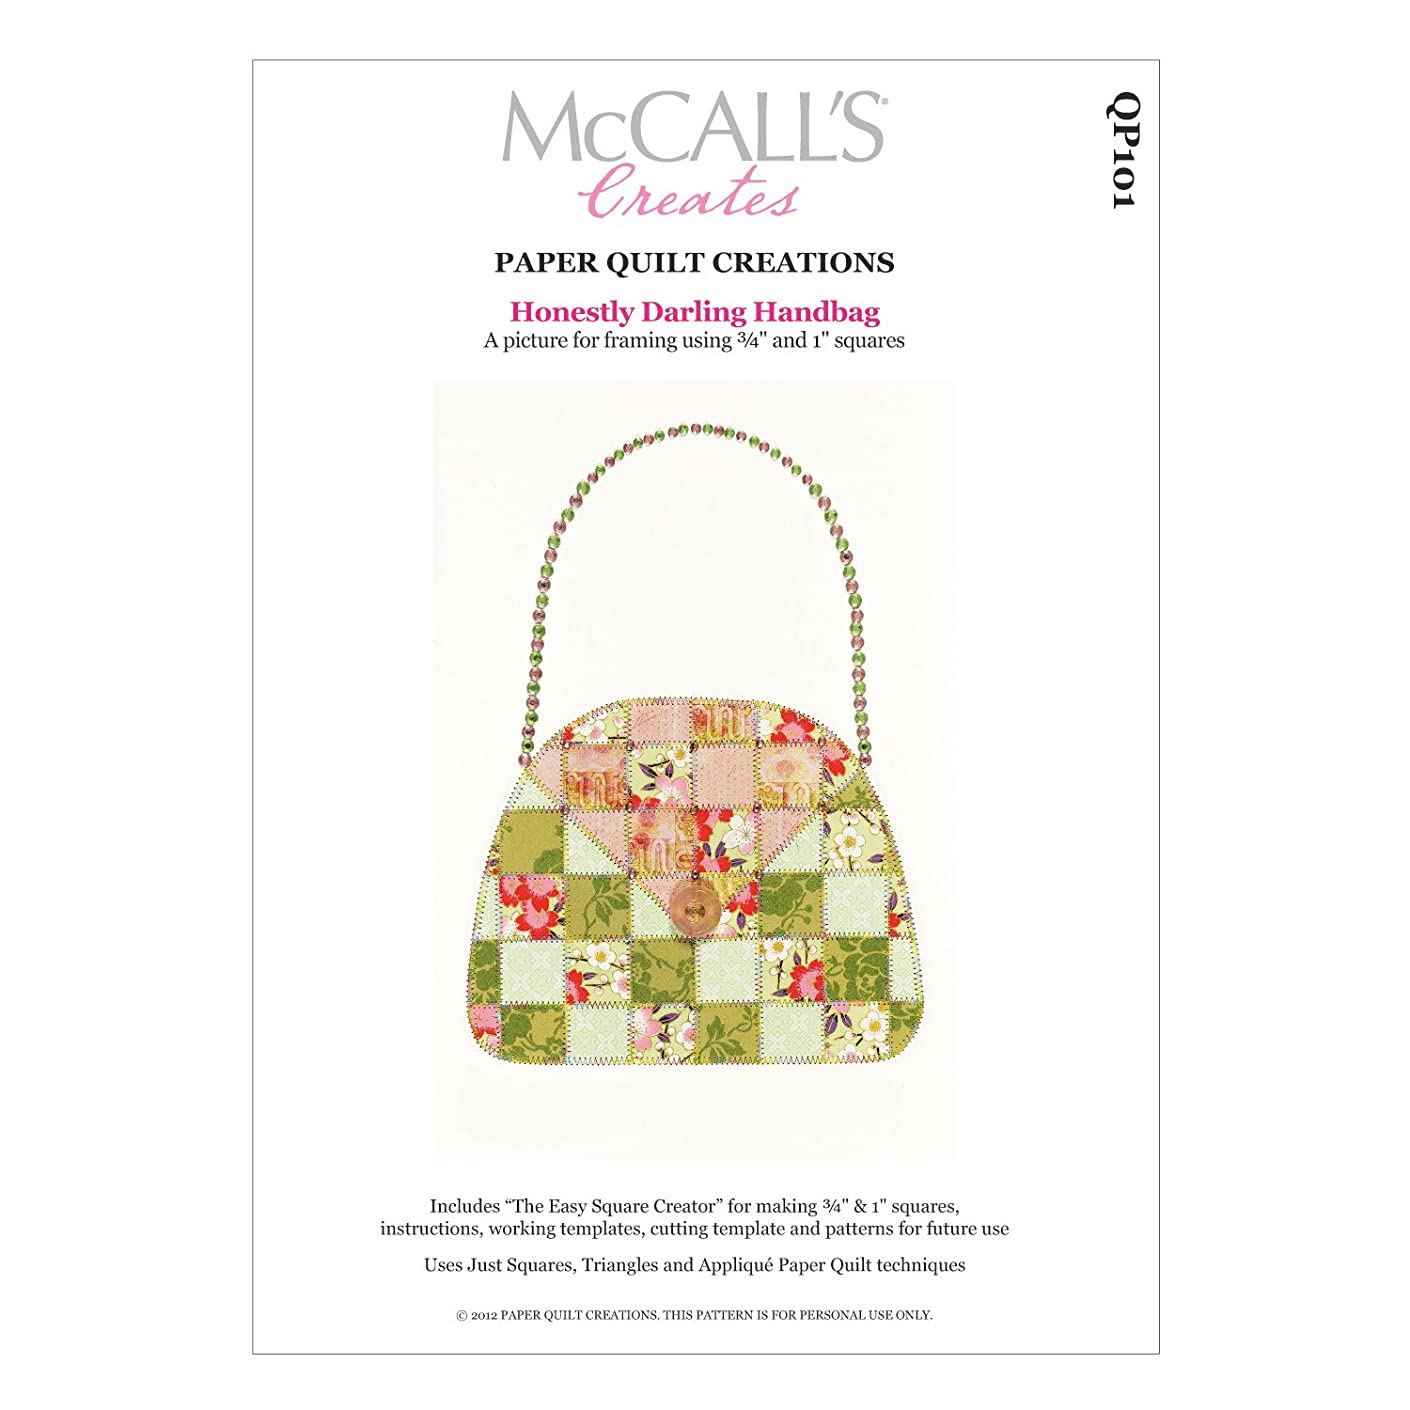 McCall's Creates W10620 Paper Quilt Creations Craft Pattern, Honestly Darling Handbag Quilt Picture